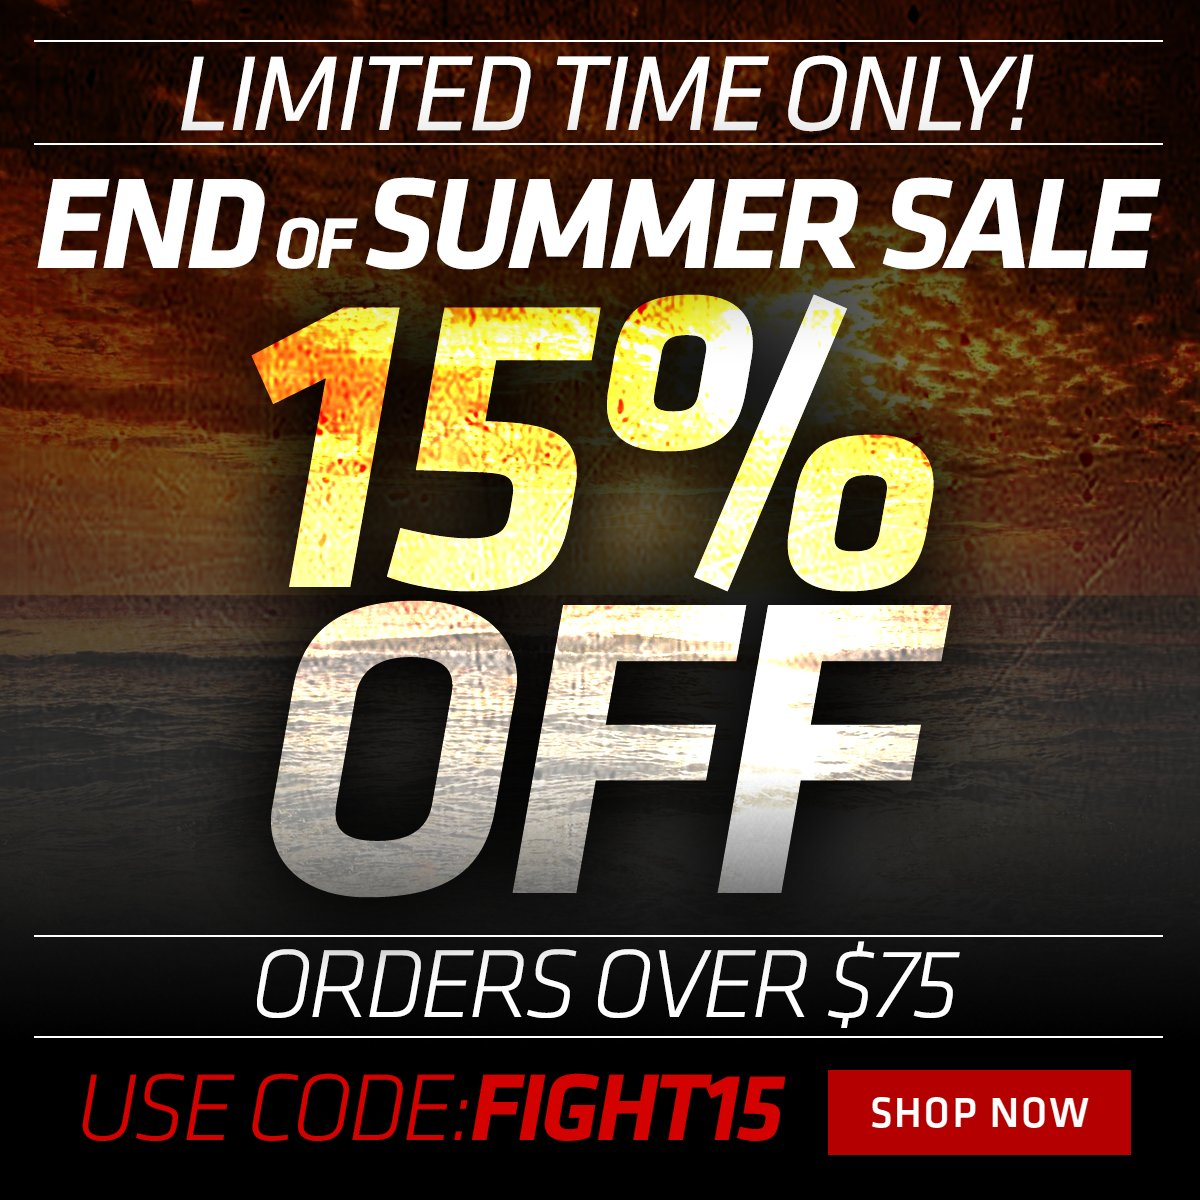 Complete list of all UFC Store Coupons for December guaranteed! Take 25% off Your Order at UFC Store, Take 20% off at UFC Store, Get 15% off Sitewide with this Promo Code at UFC Store.